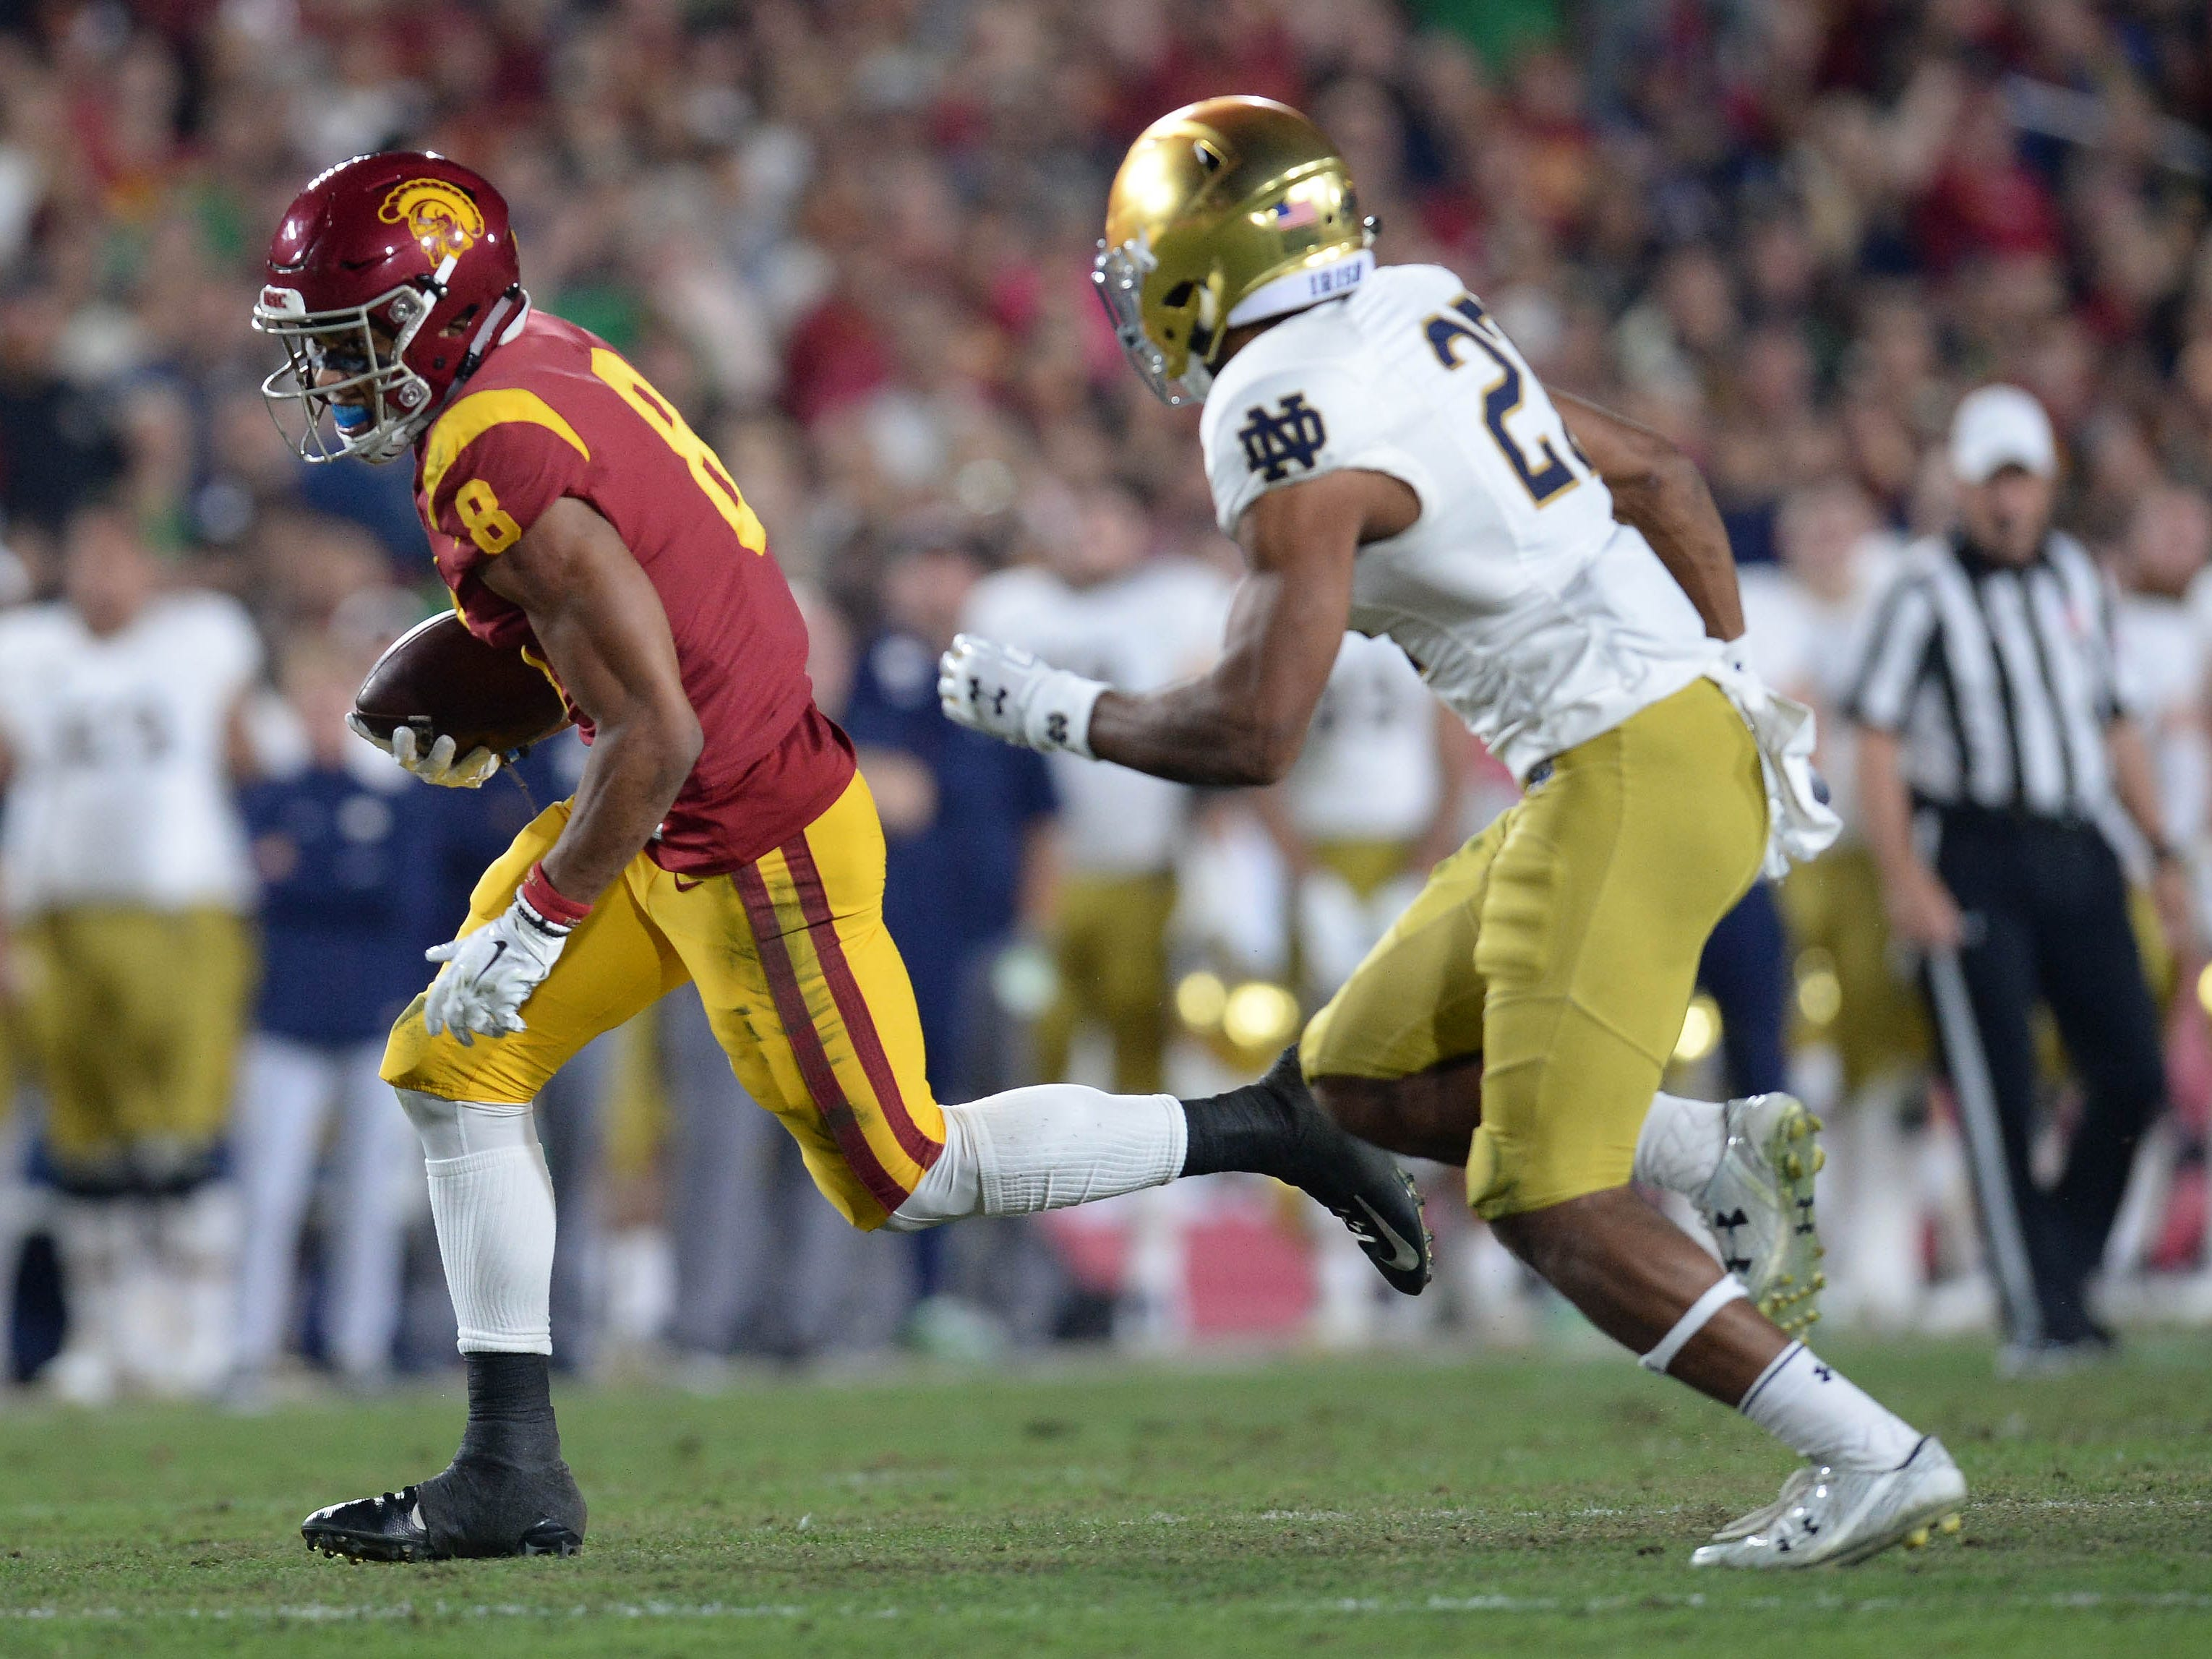 Southern California Trojans wide receiver Amon-Ra St. Brown (8) runs the ball against the Notre Dame Fighting Irish during the first half at the Los Angeles Memorial Coliseum.